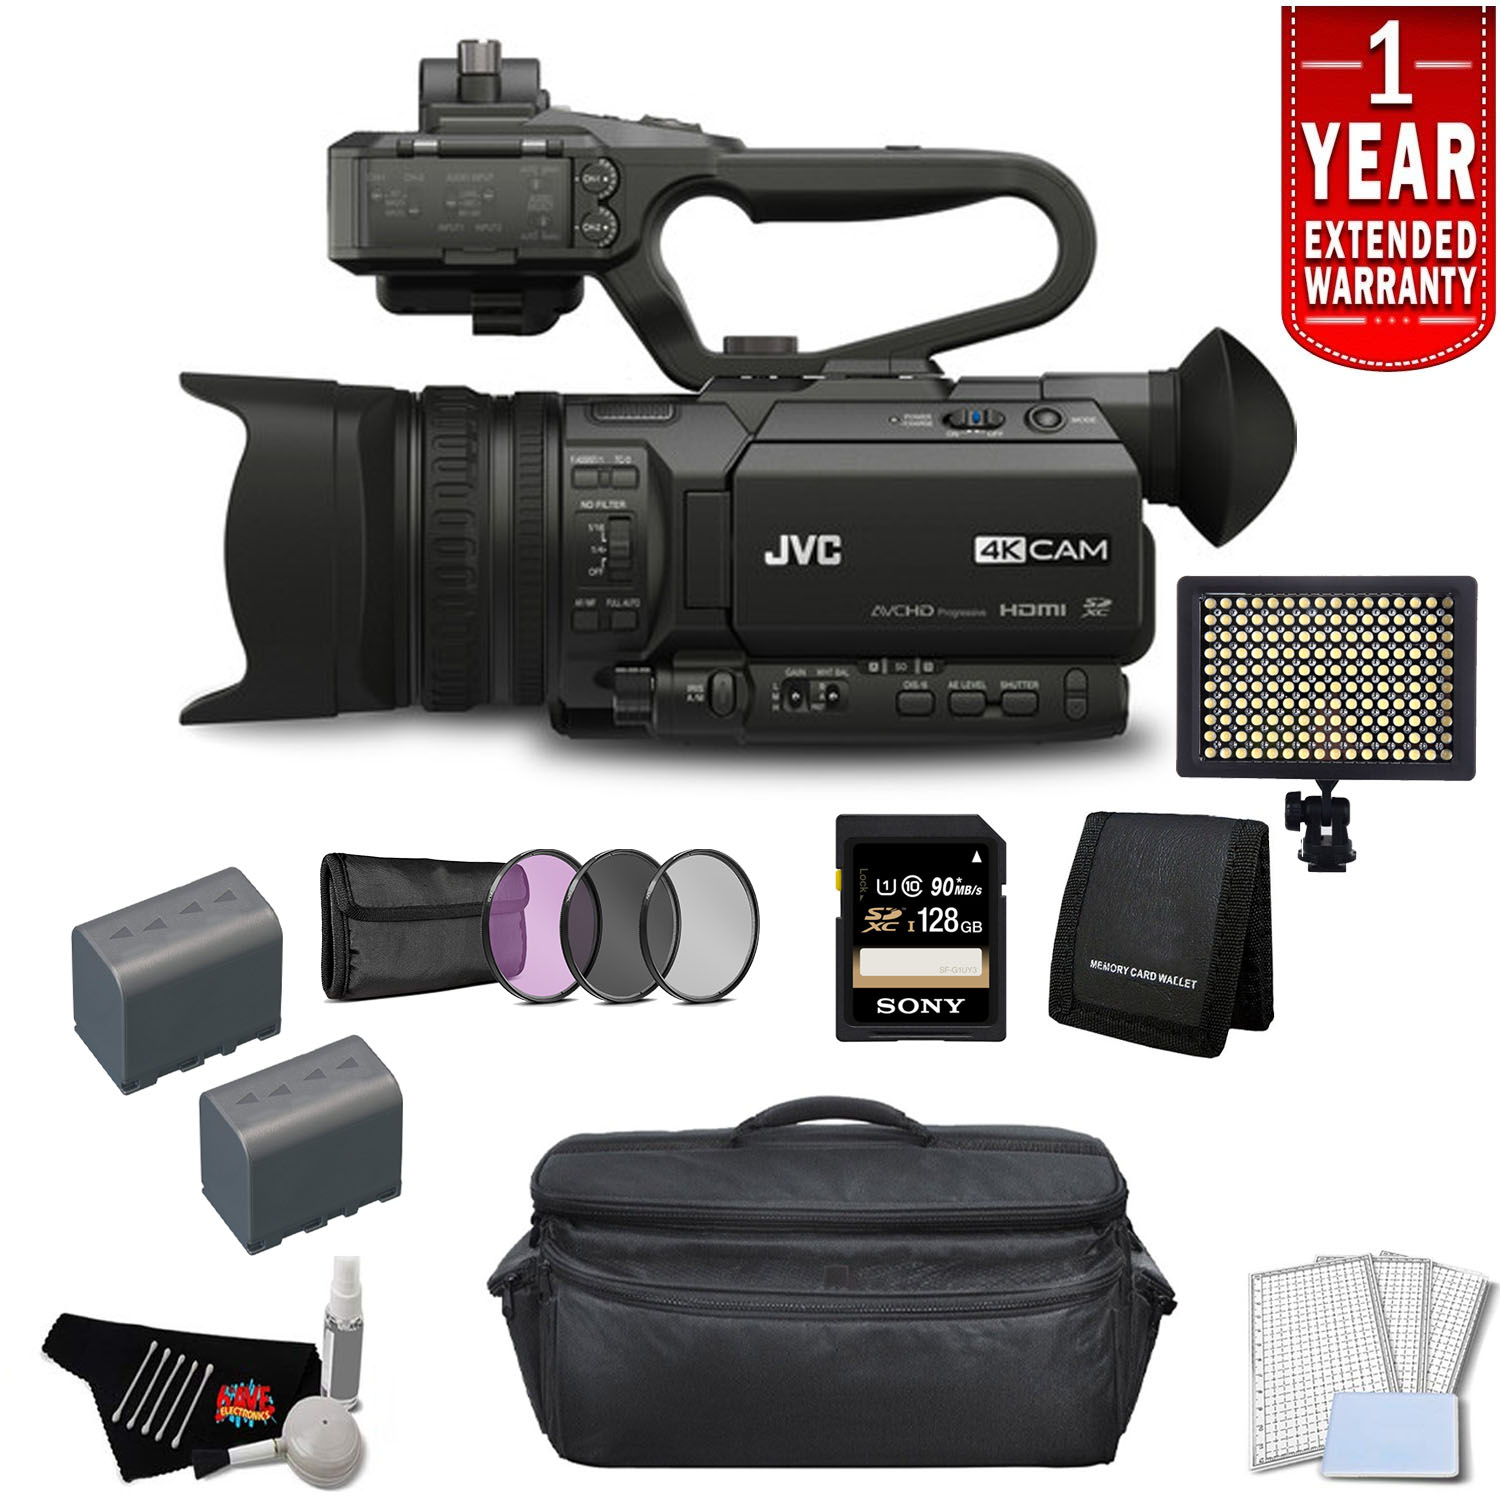 JVC 4KCAM Compact Professional Camcorder with Top Handle Audio Unit Bundle with 1 Year Extended Warranty + 128GB Memory Card+ More